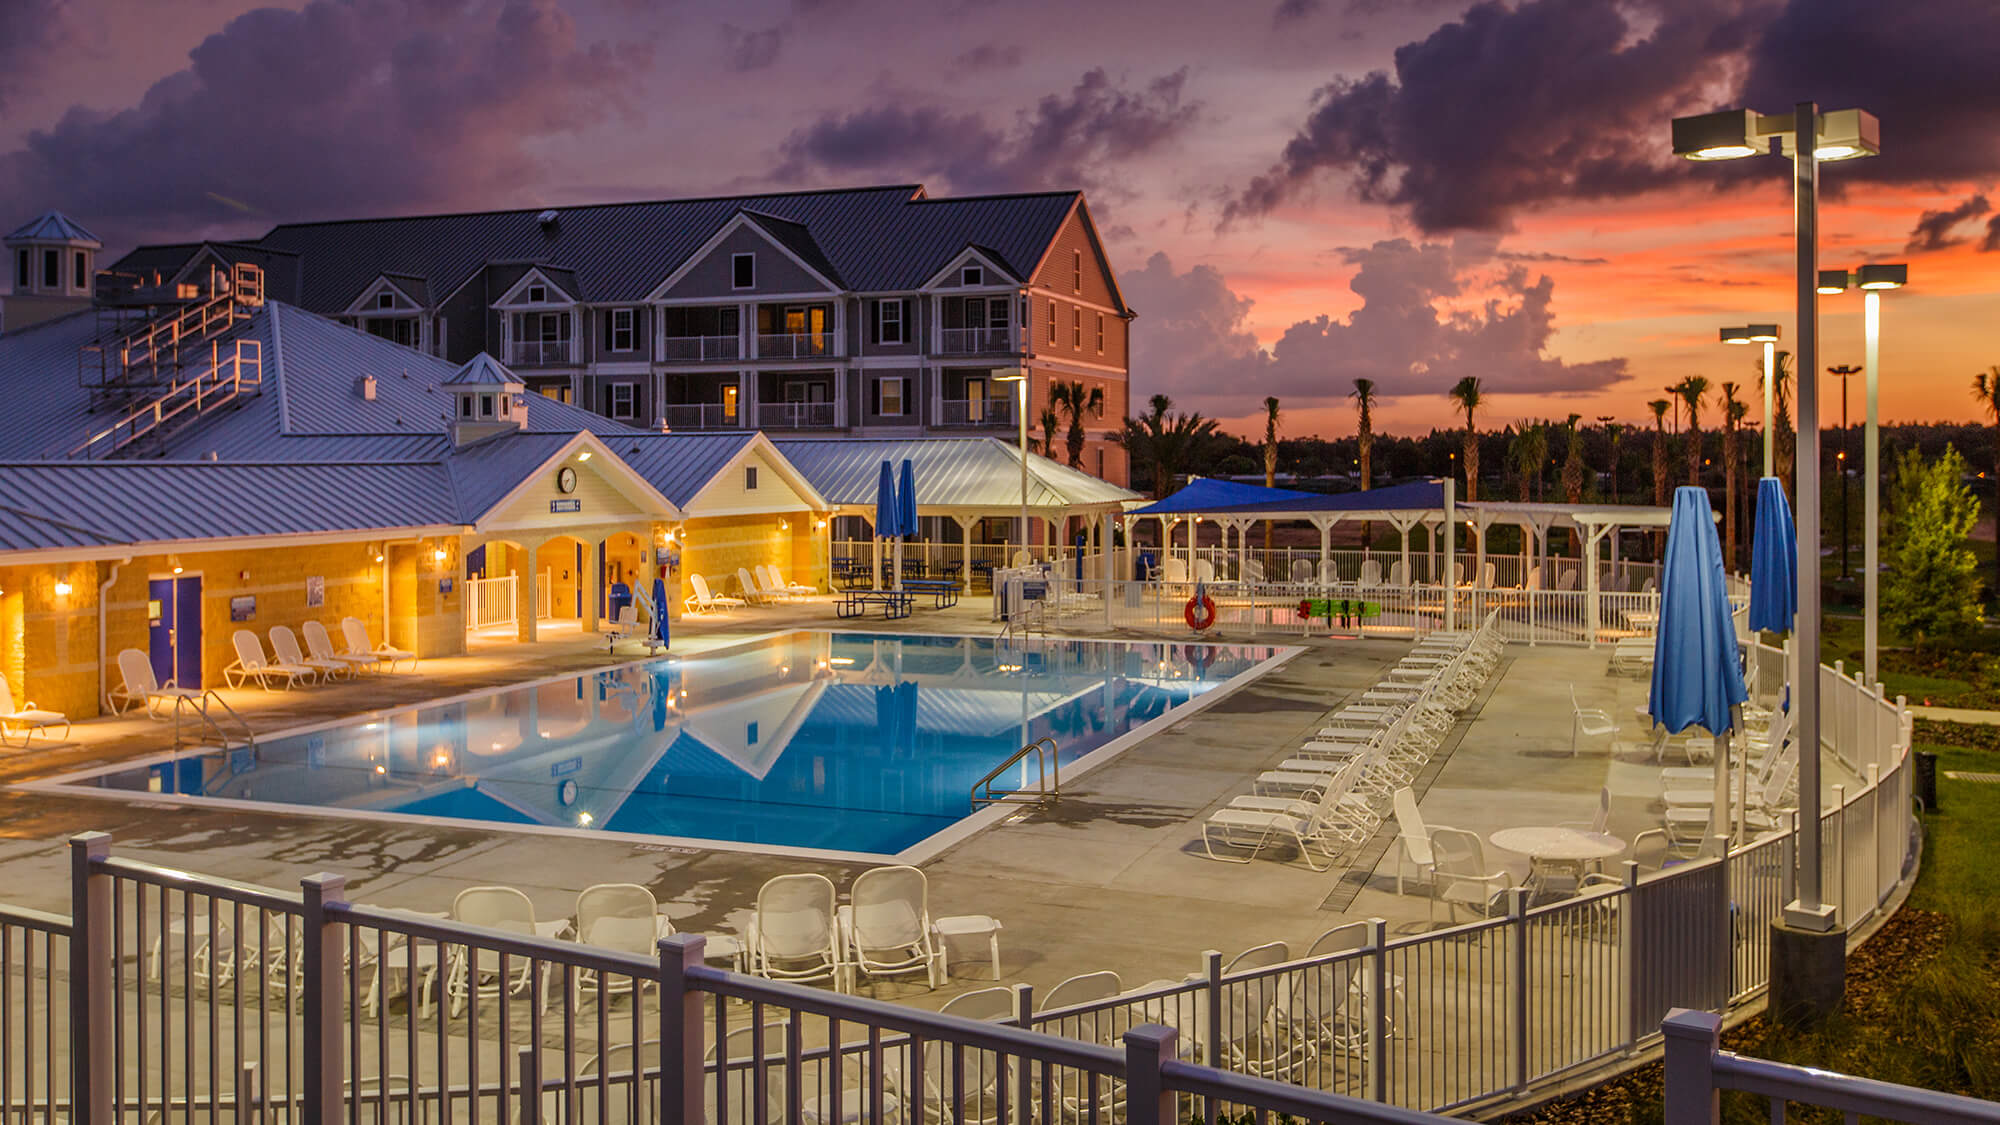 Pool, pool deck and exterior of Holiday Inn Club Vacations Orlando Breeze Resort in Davenport, FL